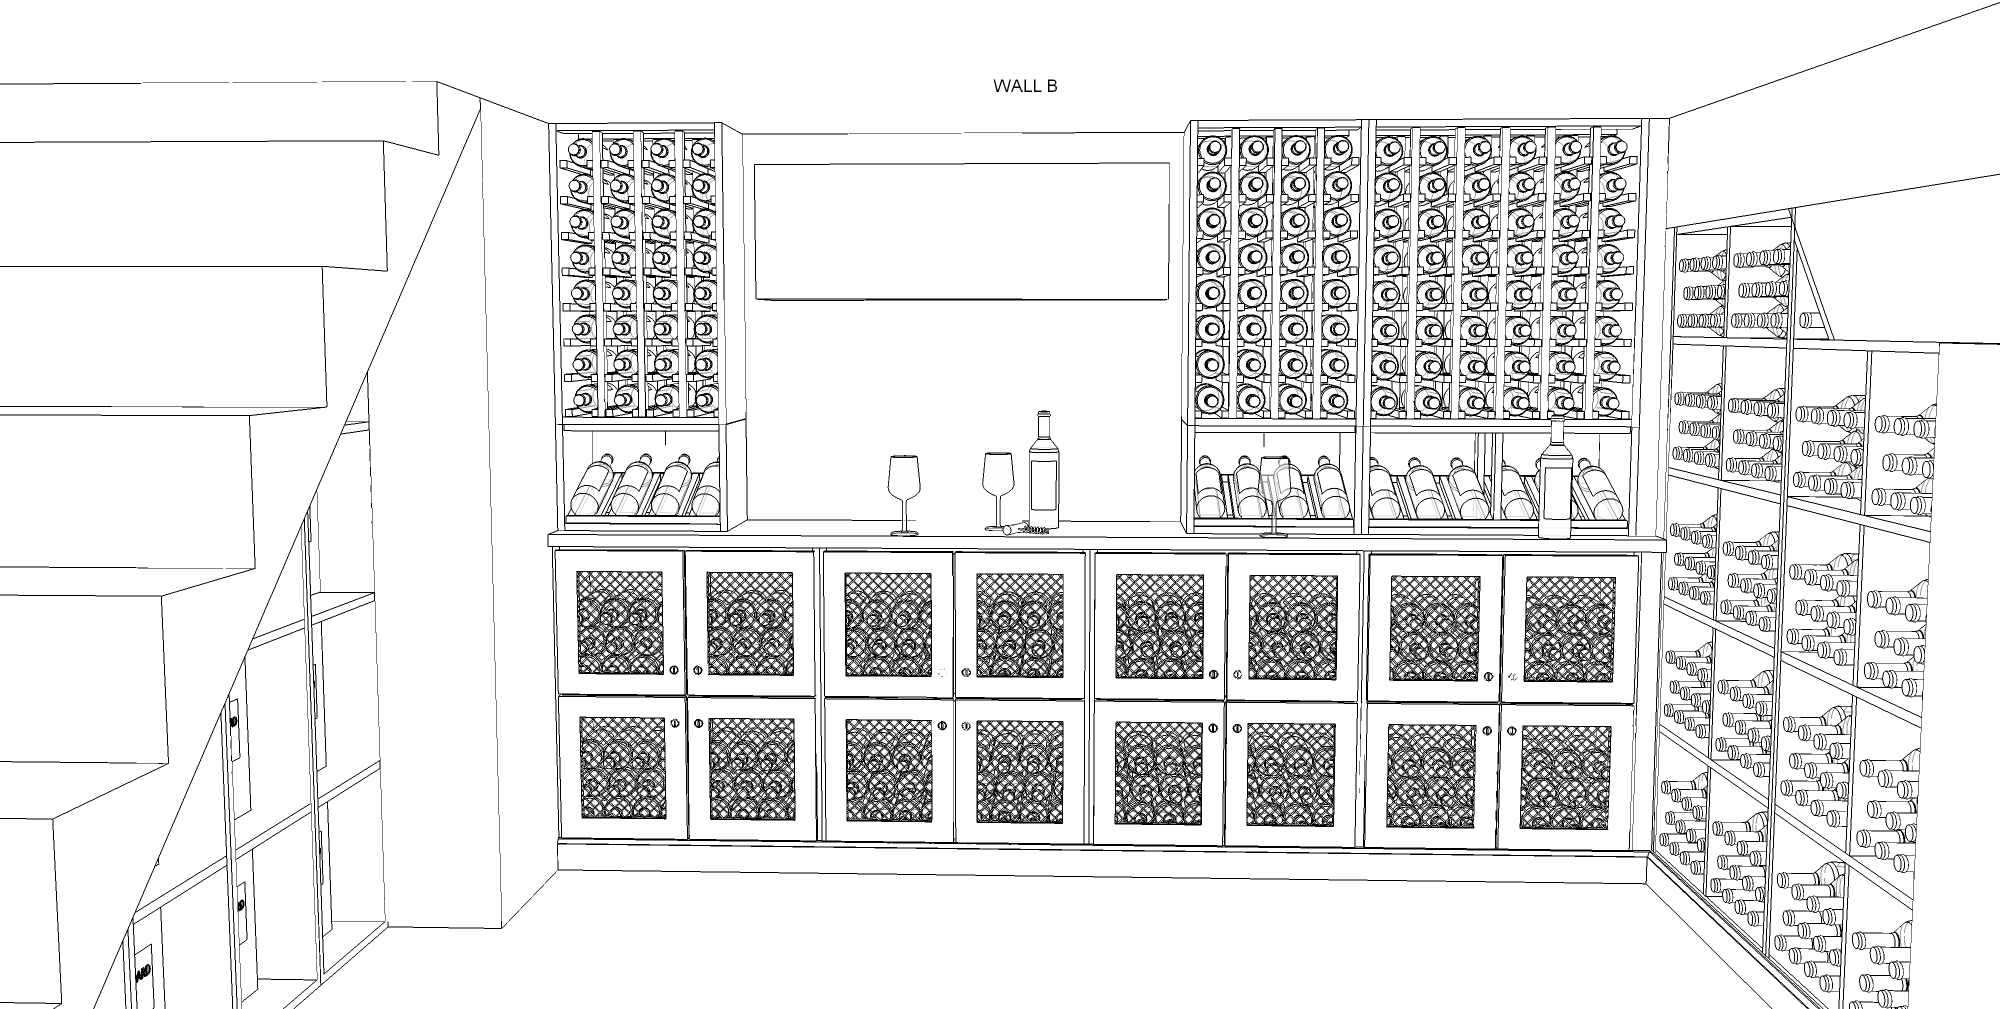 Kessick wine cellars designs and manufacturers a stunning for Wine cellar plans